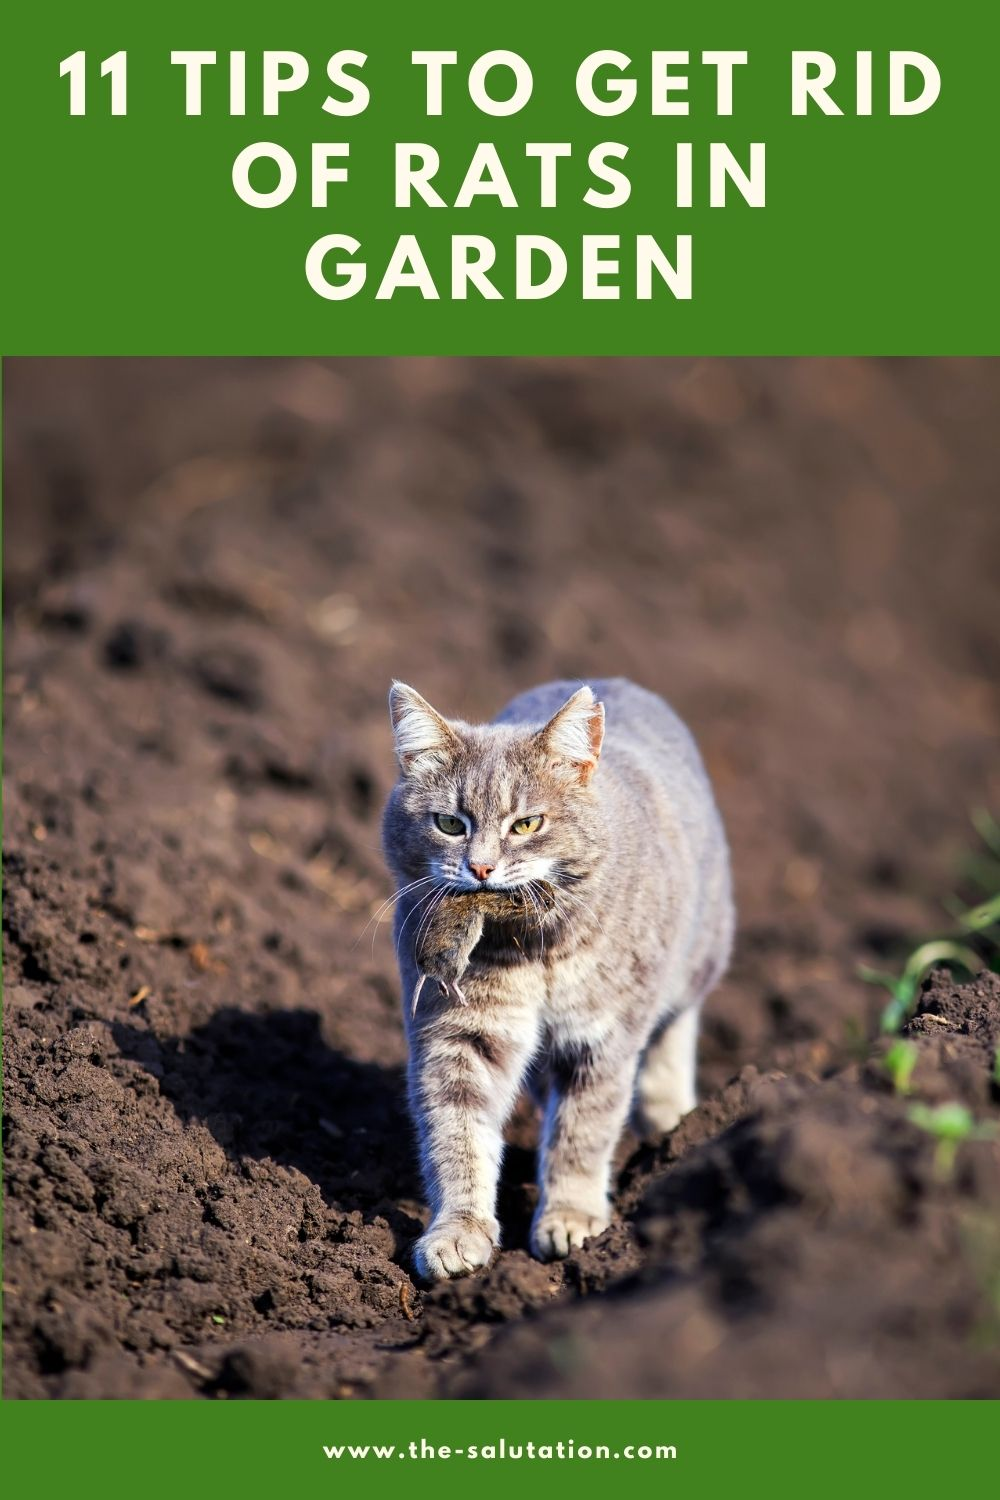 11 Tips to Get Rid of Rats in Garden 4